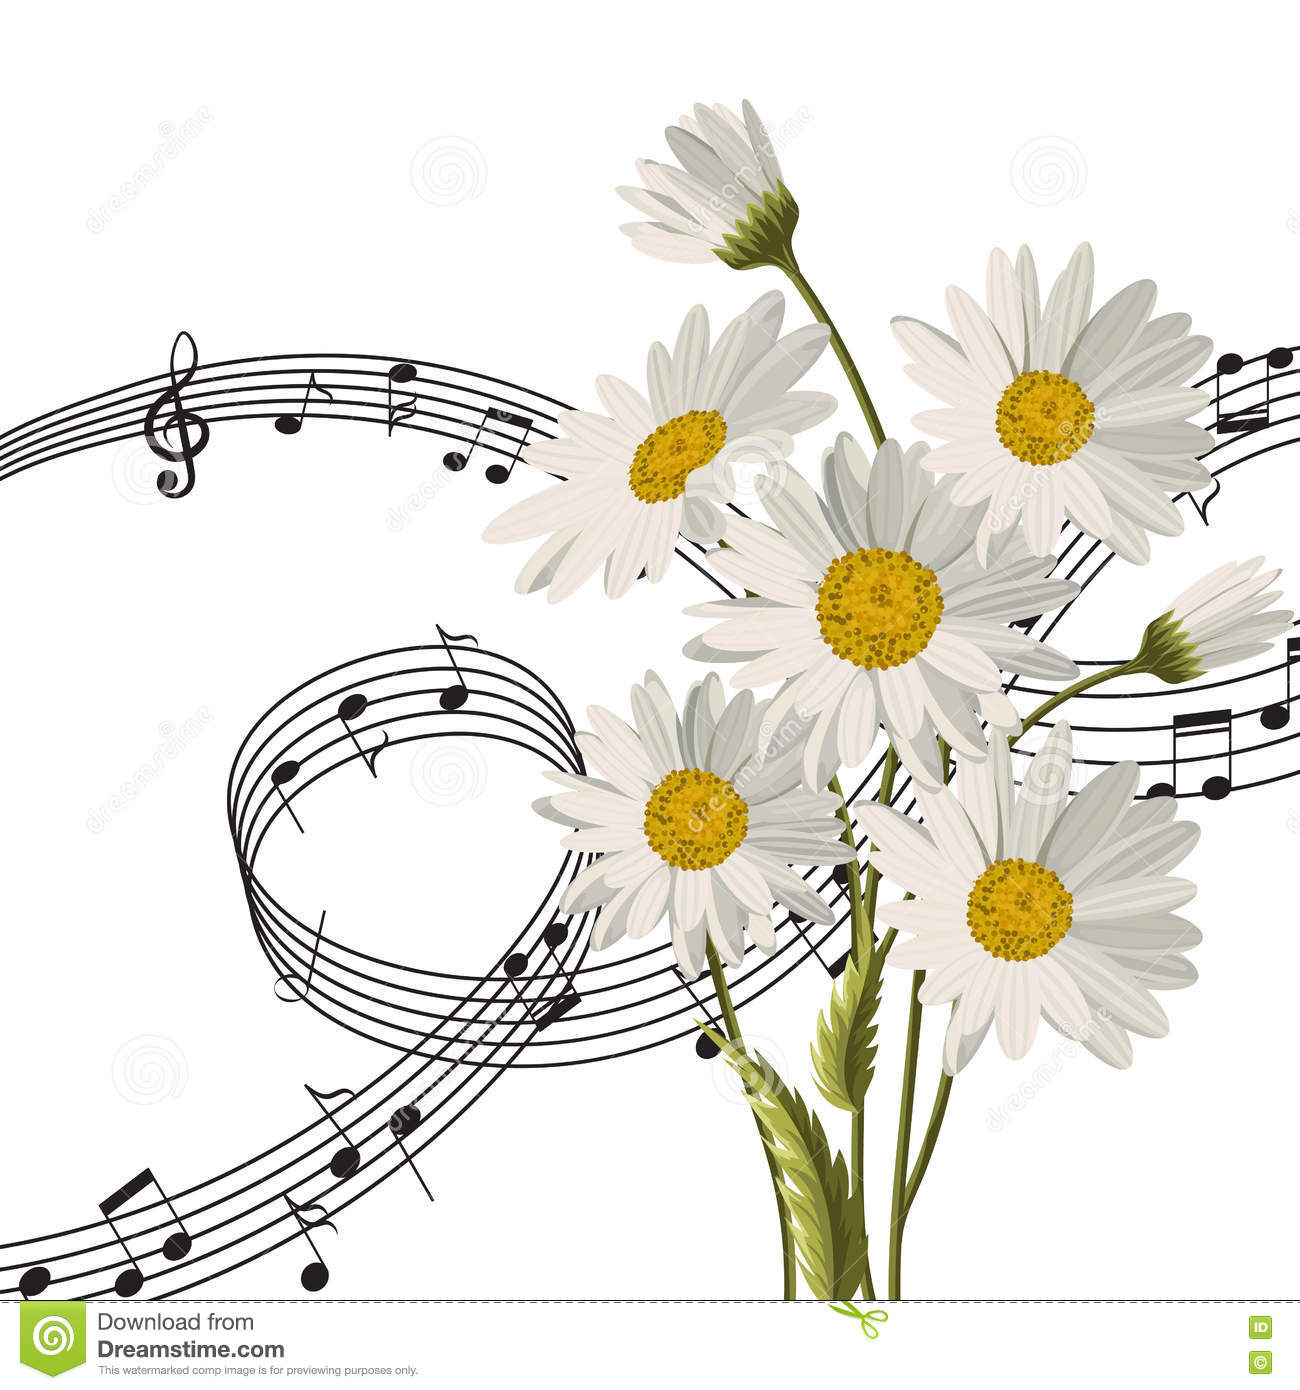 Daisies With Music Notes. Stock Vector. Illustration Of